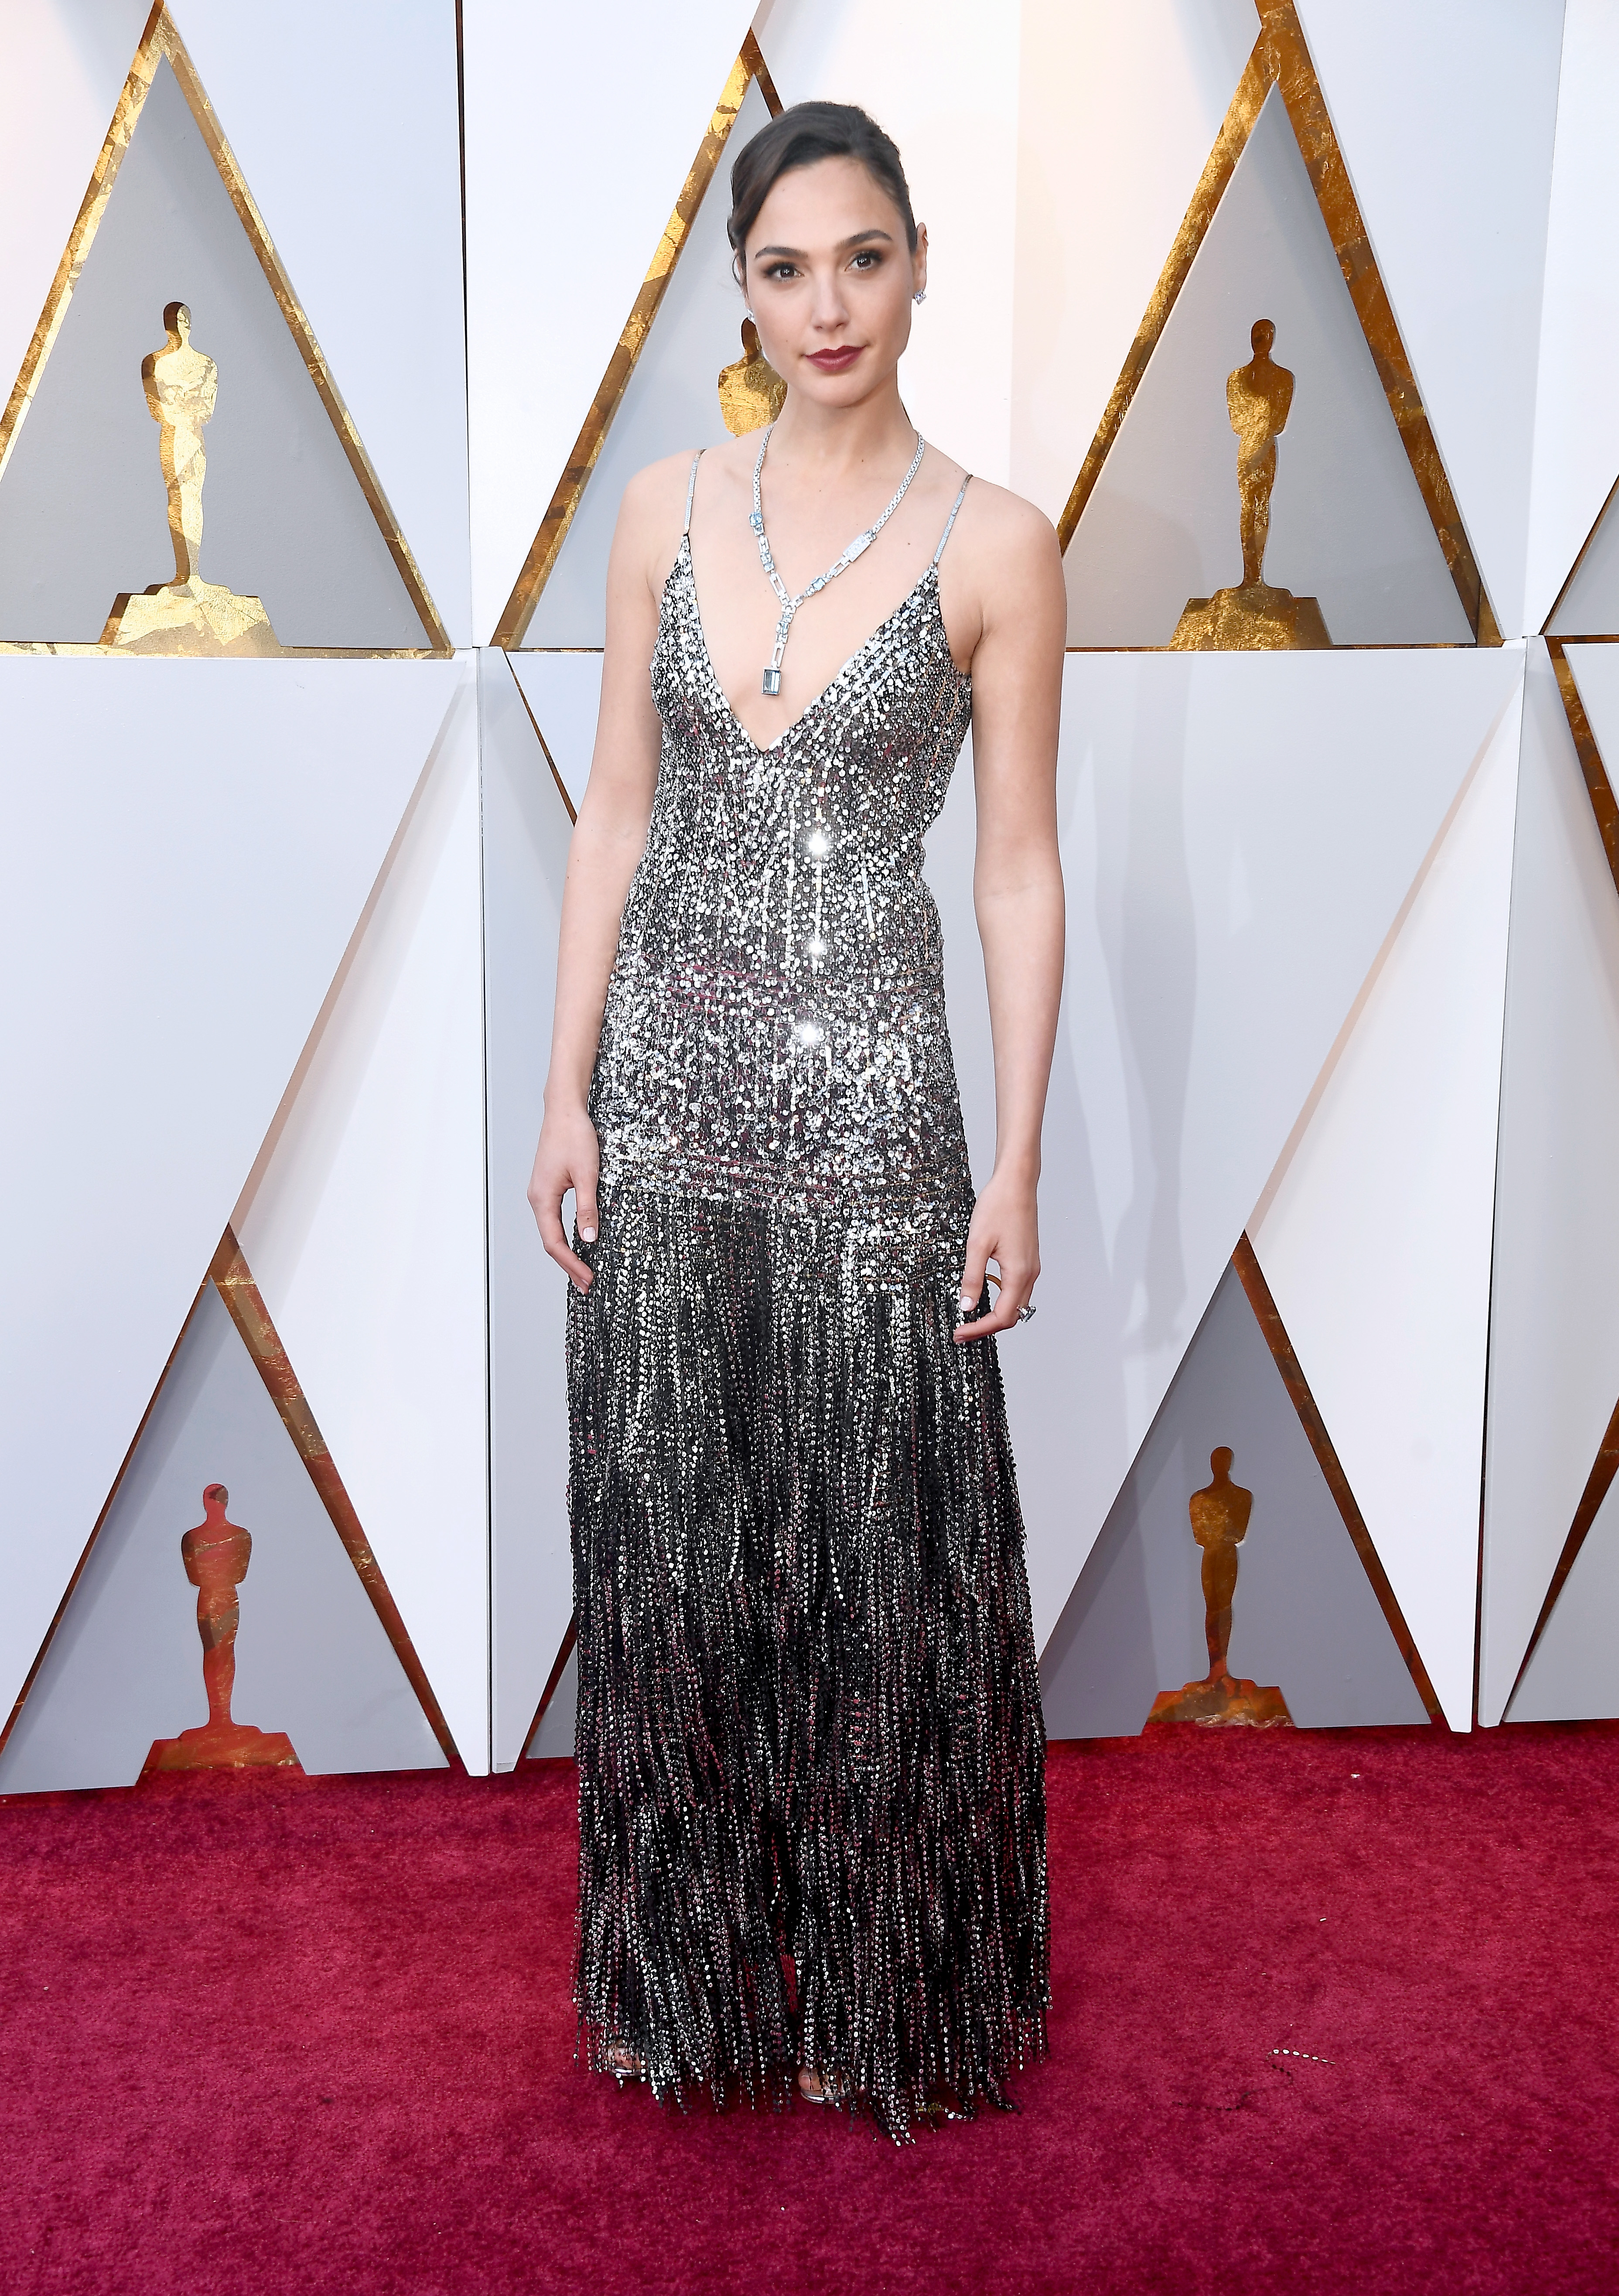 HOLLYWOOD, CA - MARCH 04: Gal Gadot attends the 90th Annual Academy Awards at Hollywood & Highland Center on March 4, 2018 in Hollywood, California.  (Photo by Frazer Harrison/Getty Images)